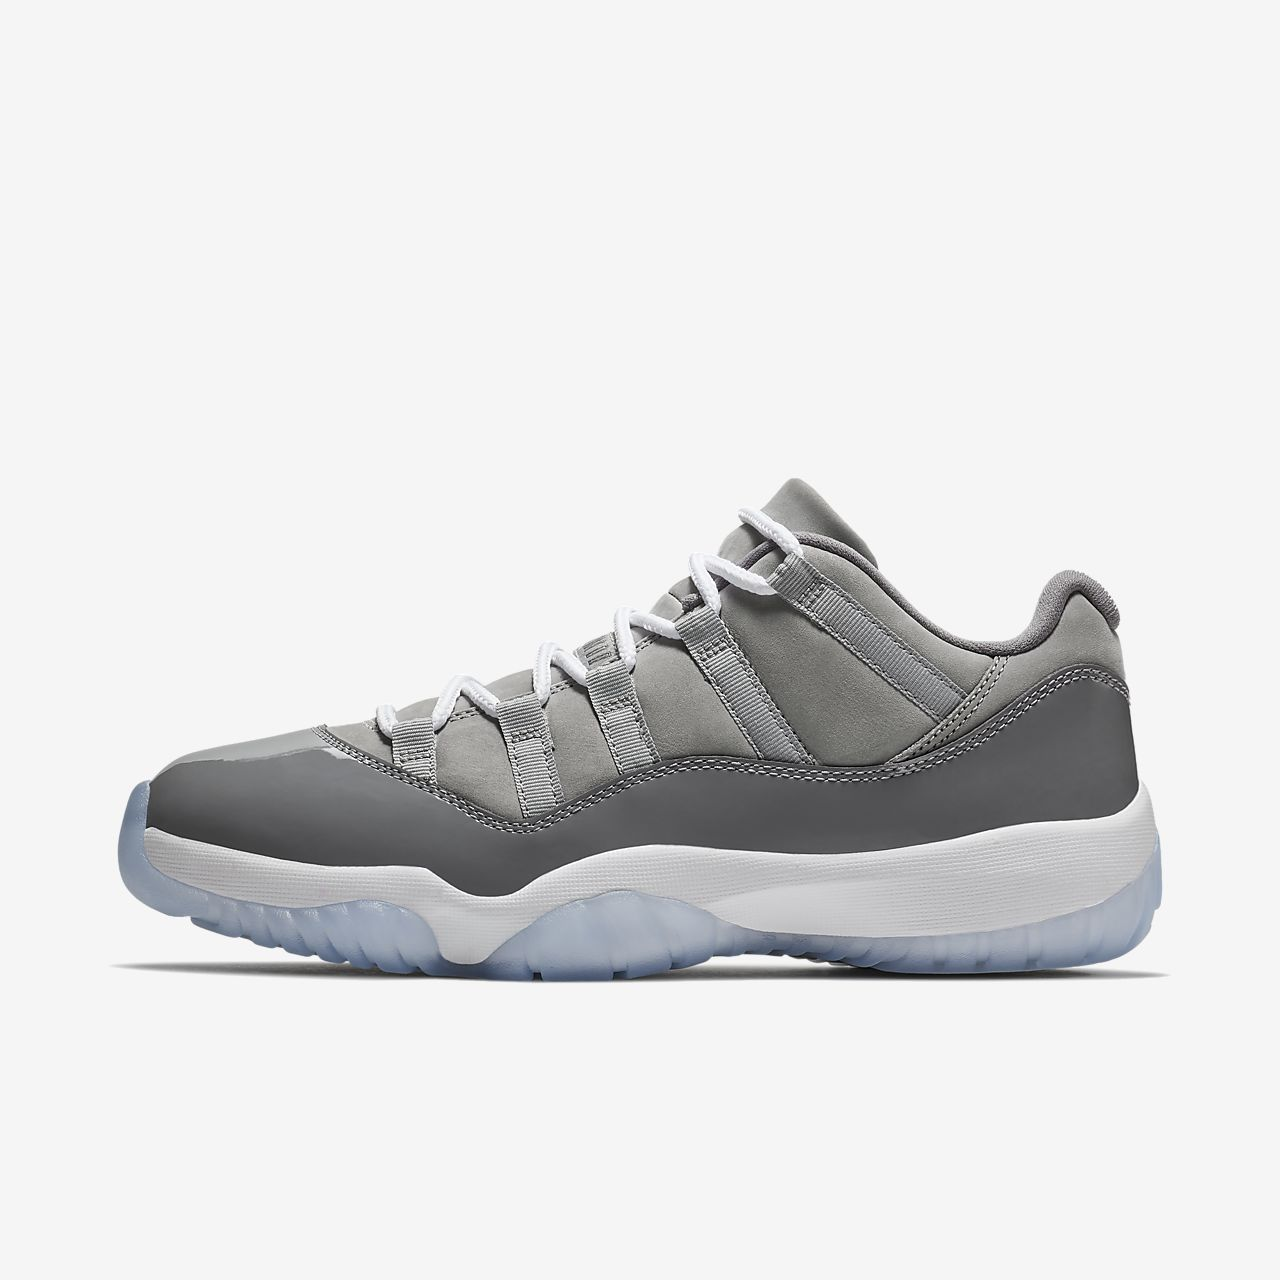 ... Air Jordan 11 Retro Low Men's Shoe